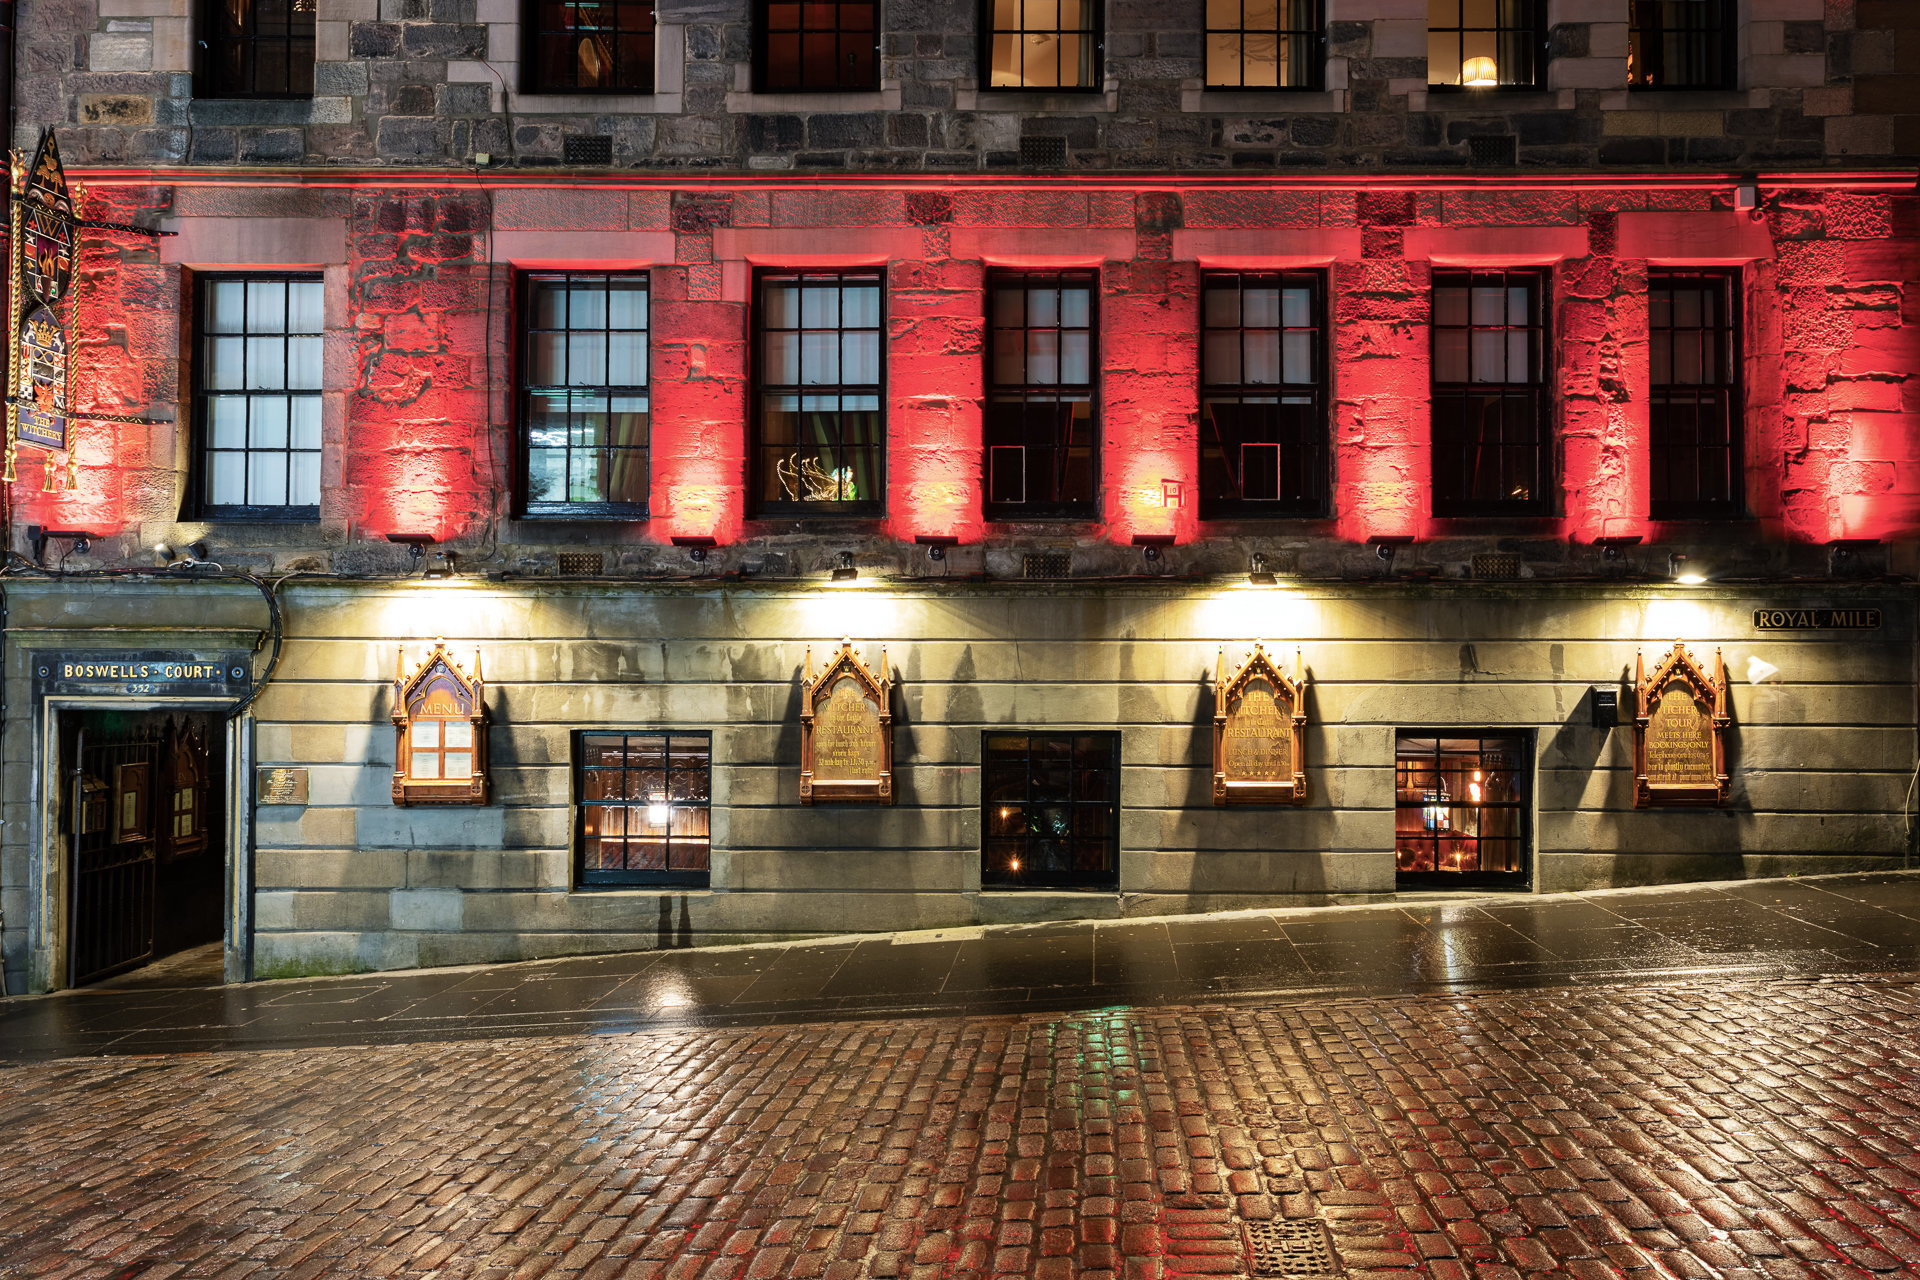 Boswell's Court at Royal Mile